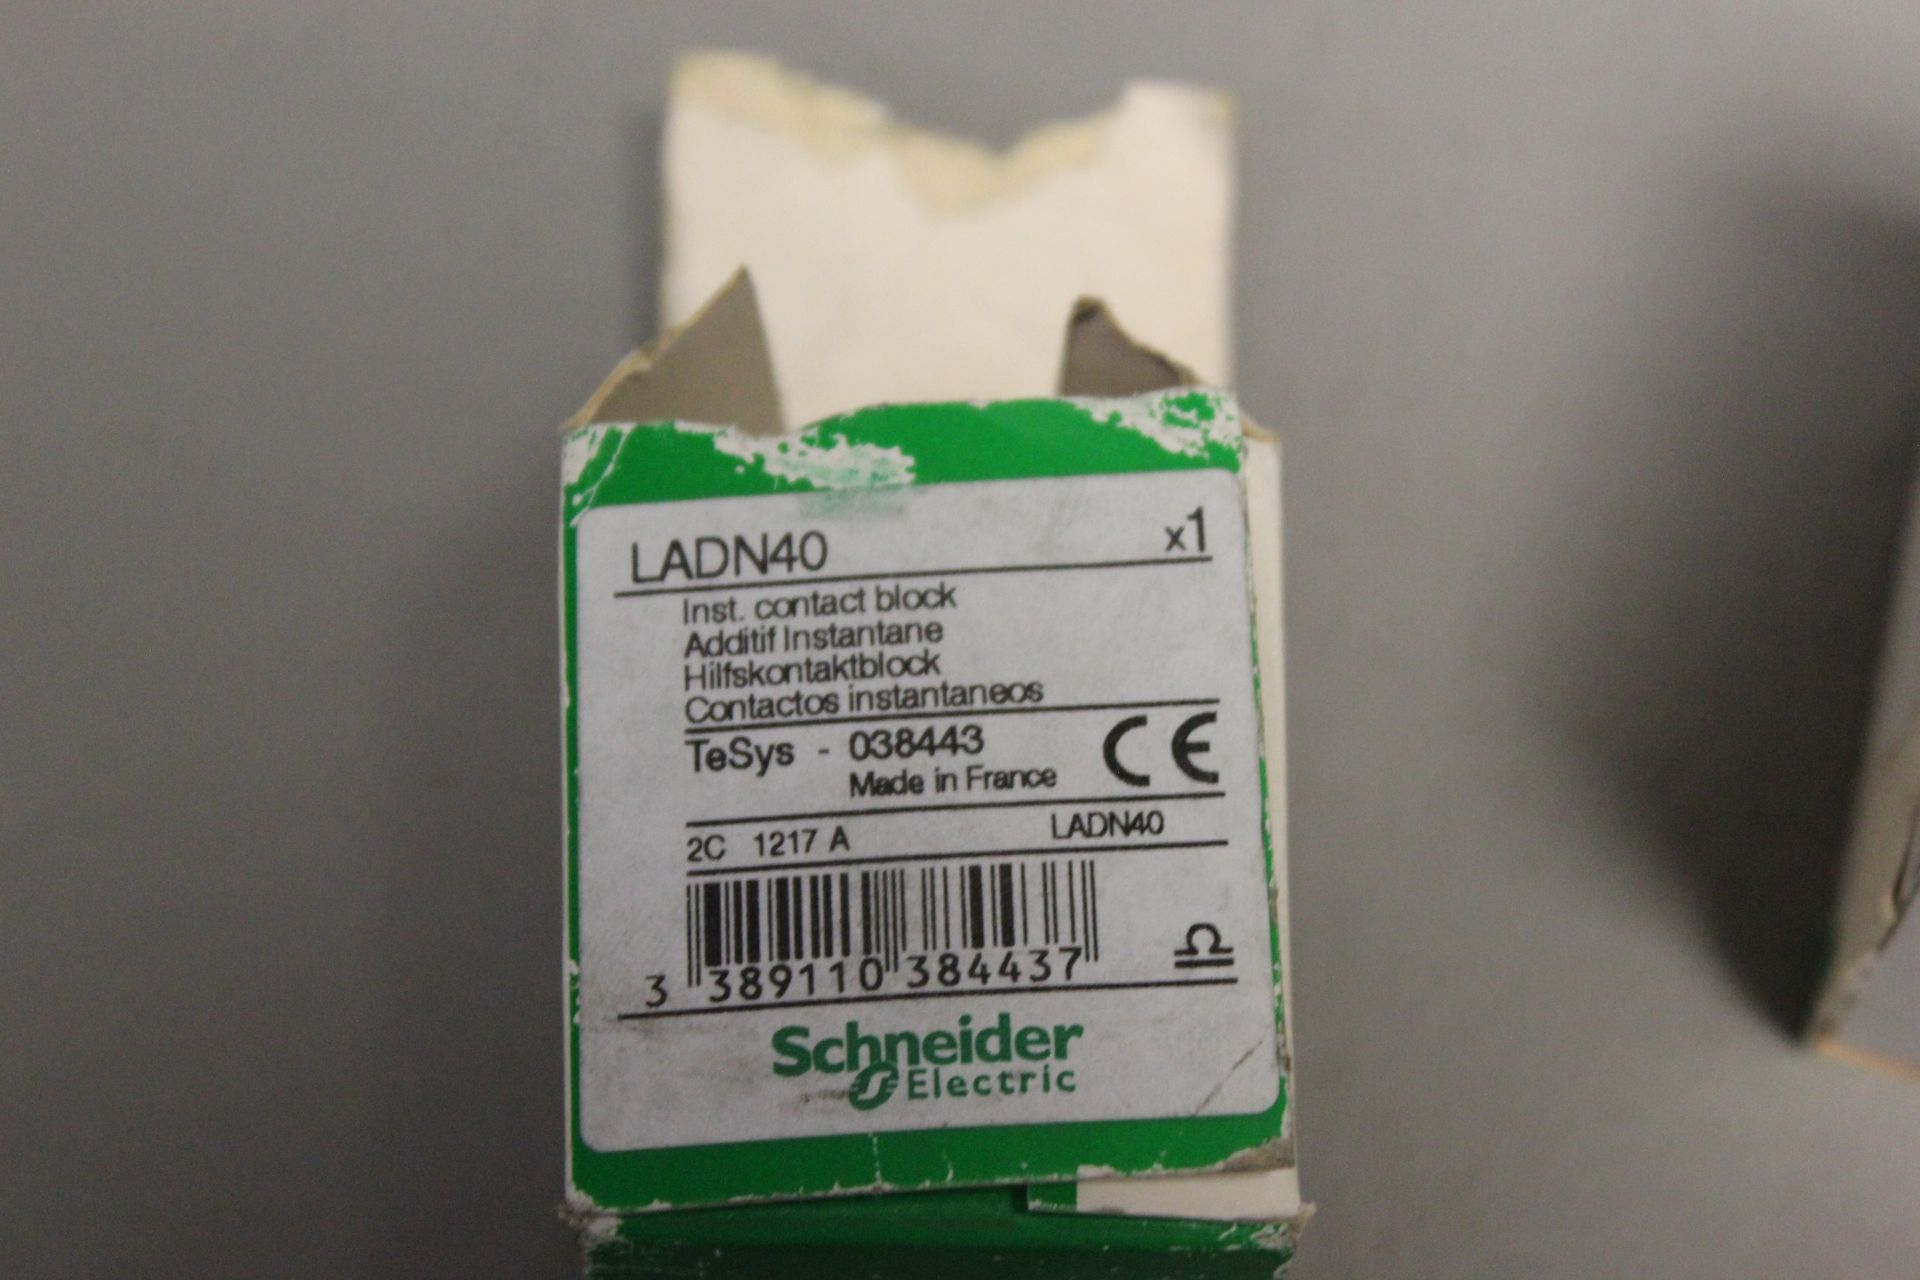 LOT OF NEW SCHNEIDER ELECTRIC PARTS - Image 3 of 3